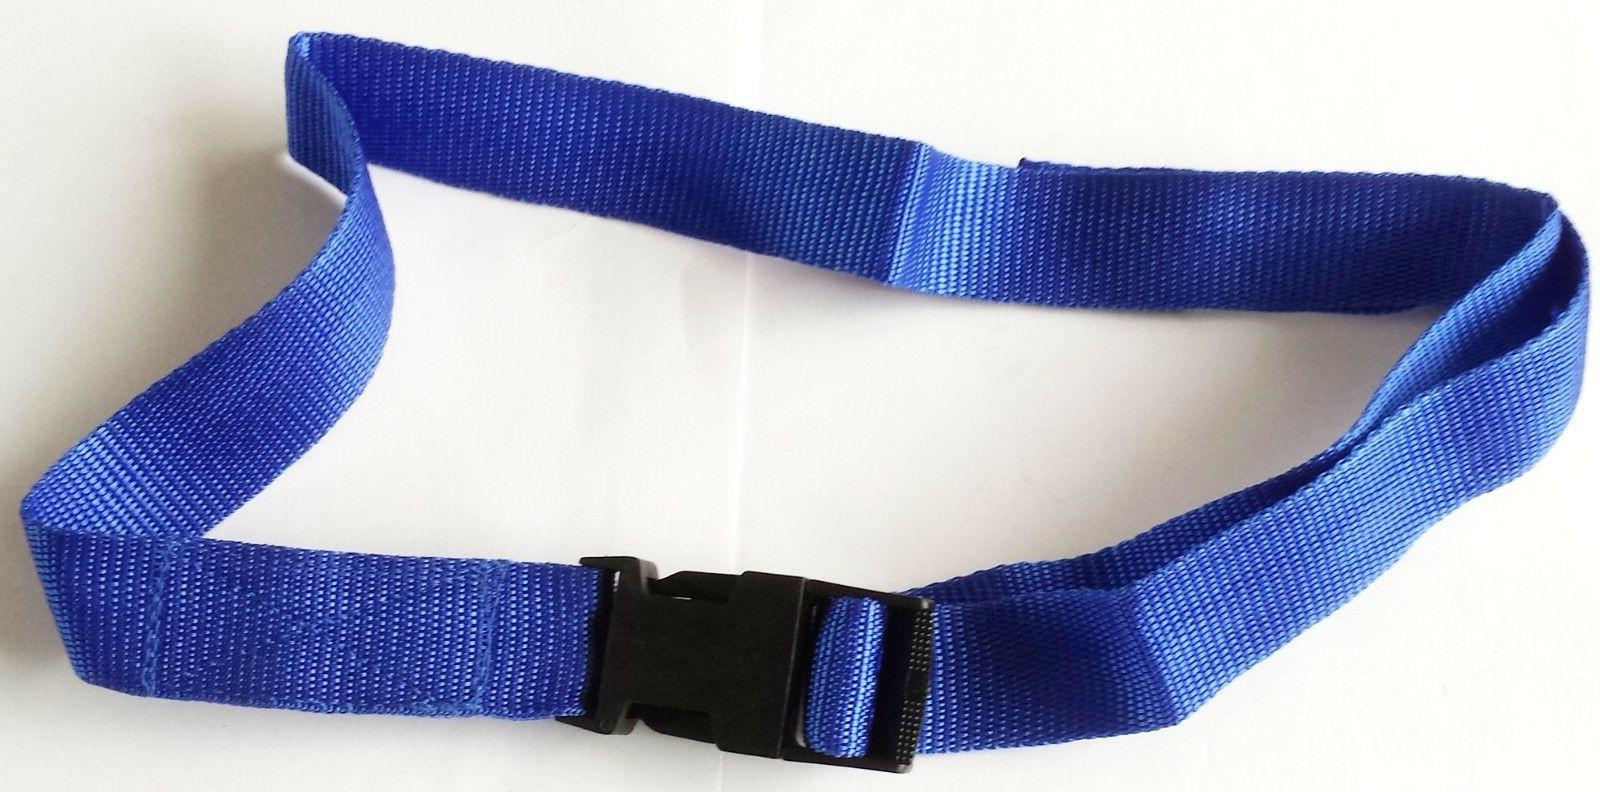 25mm Adjustable Webbing Release, 1strap